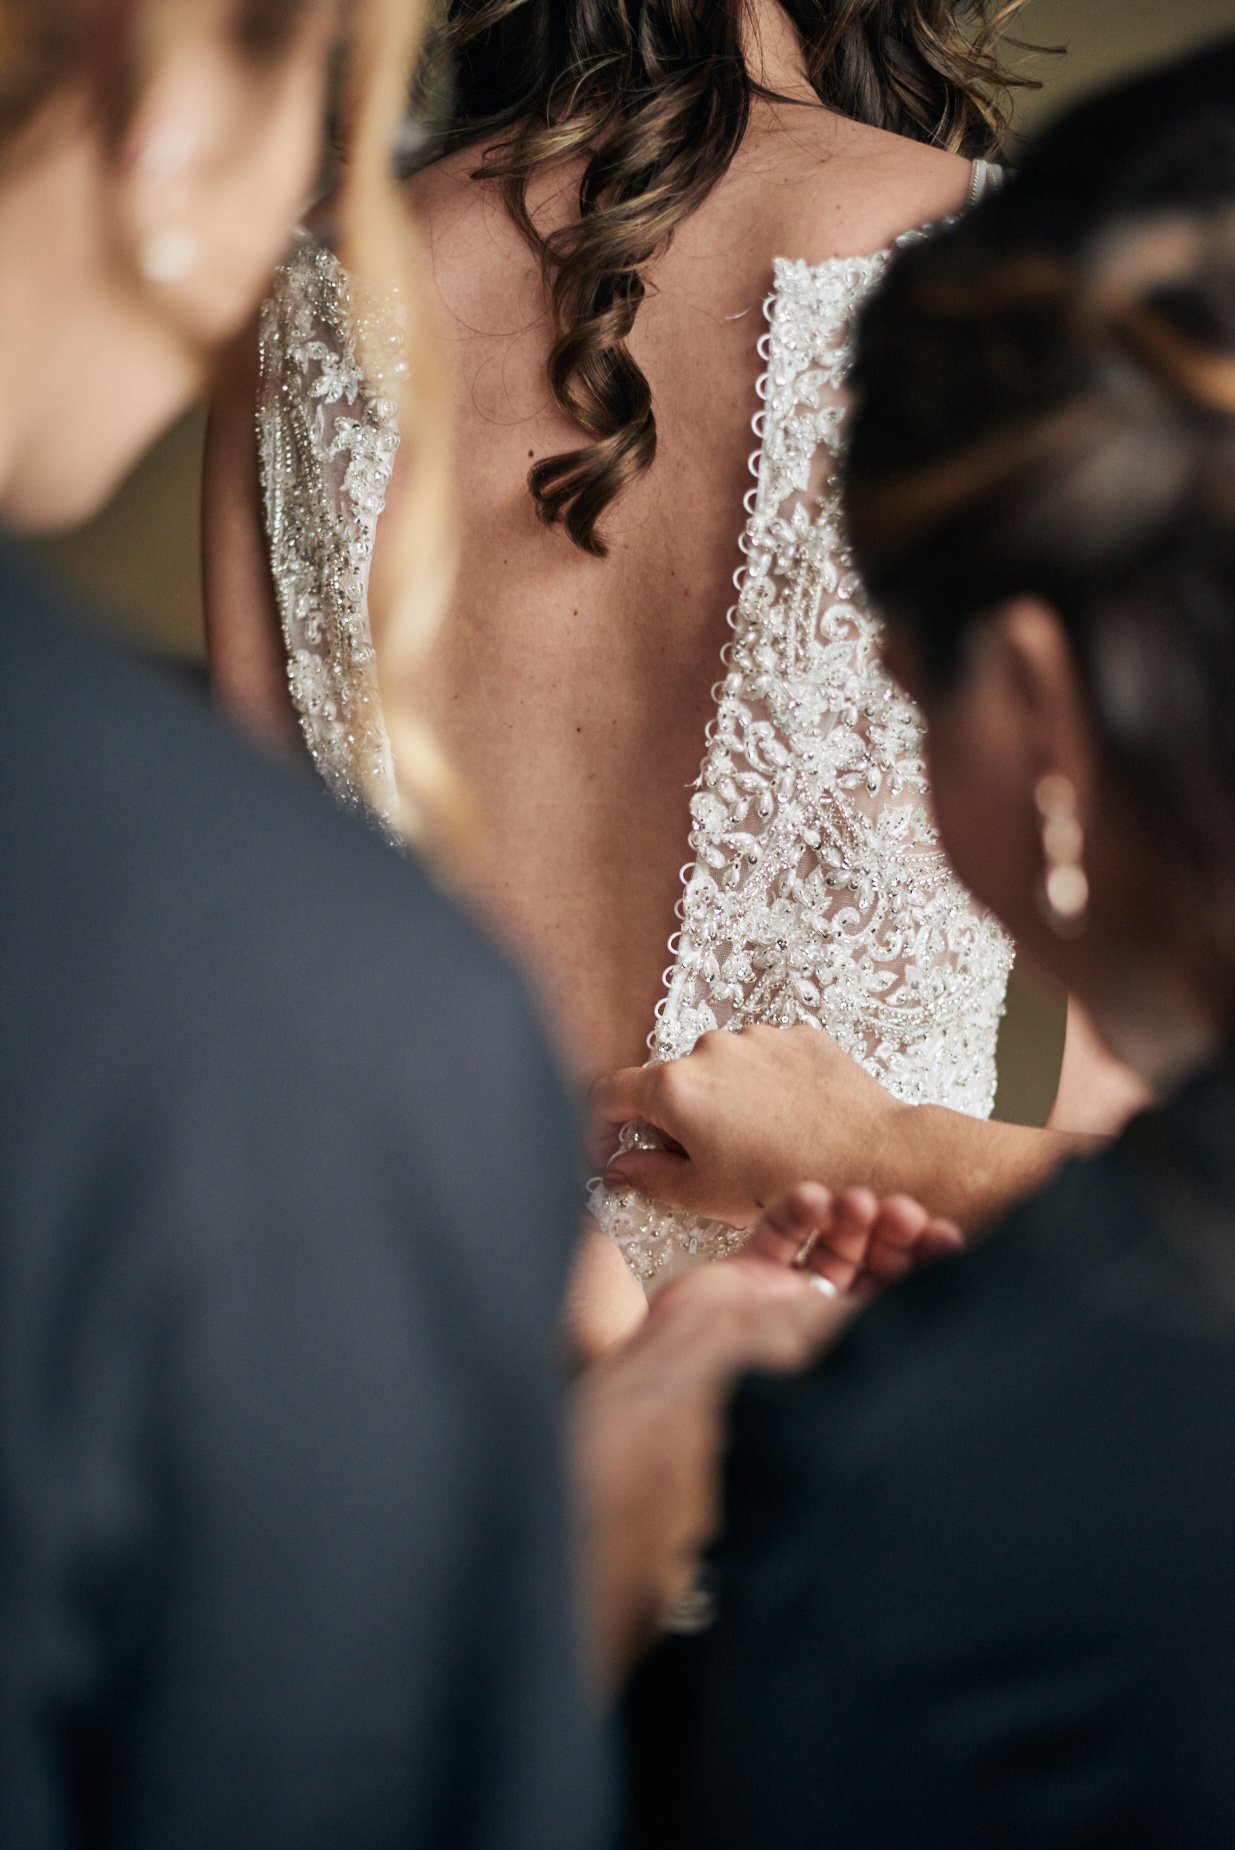 Wedding Photography by Cate Bligh, bride getting ready at Mountain Edge Resort and Spa in Newbury, NH